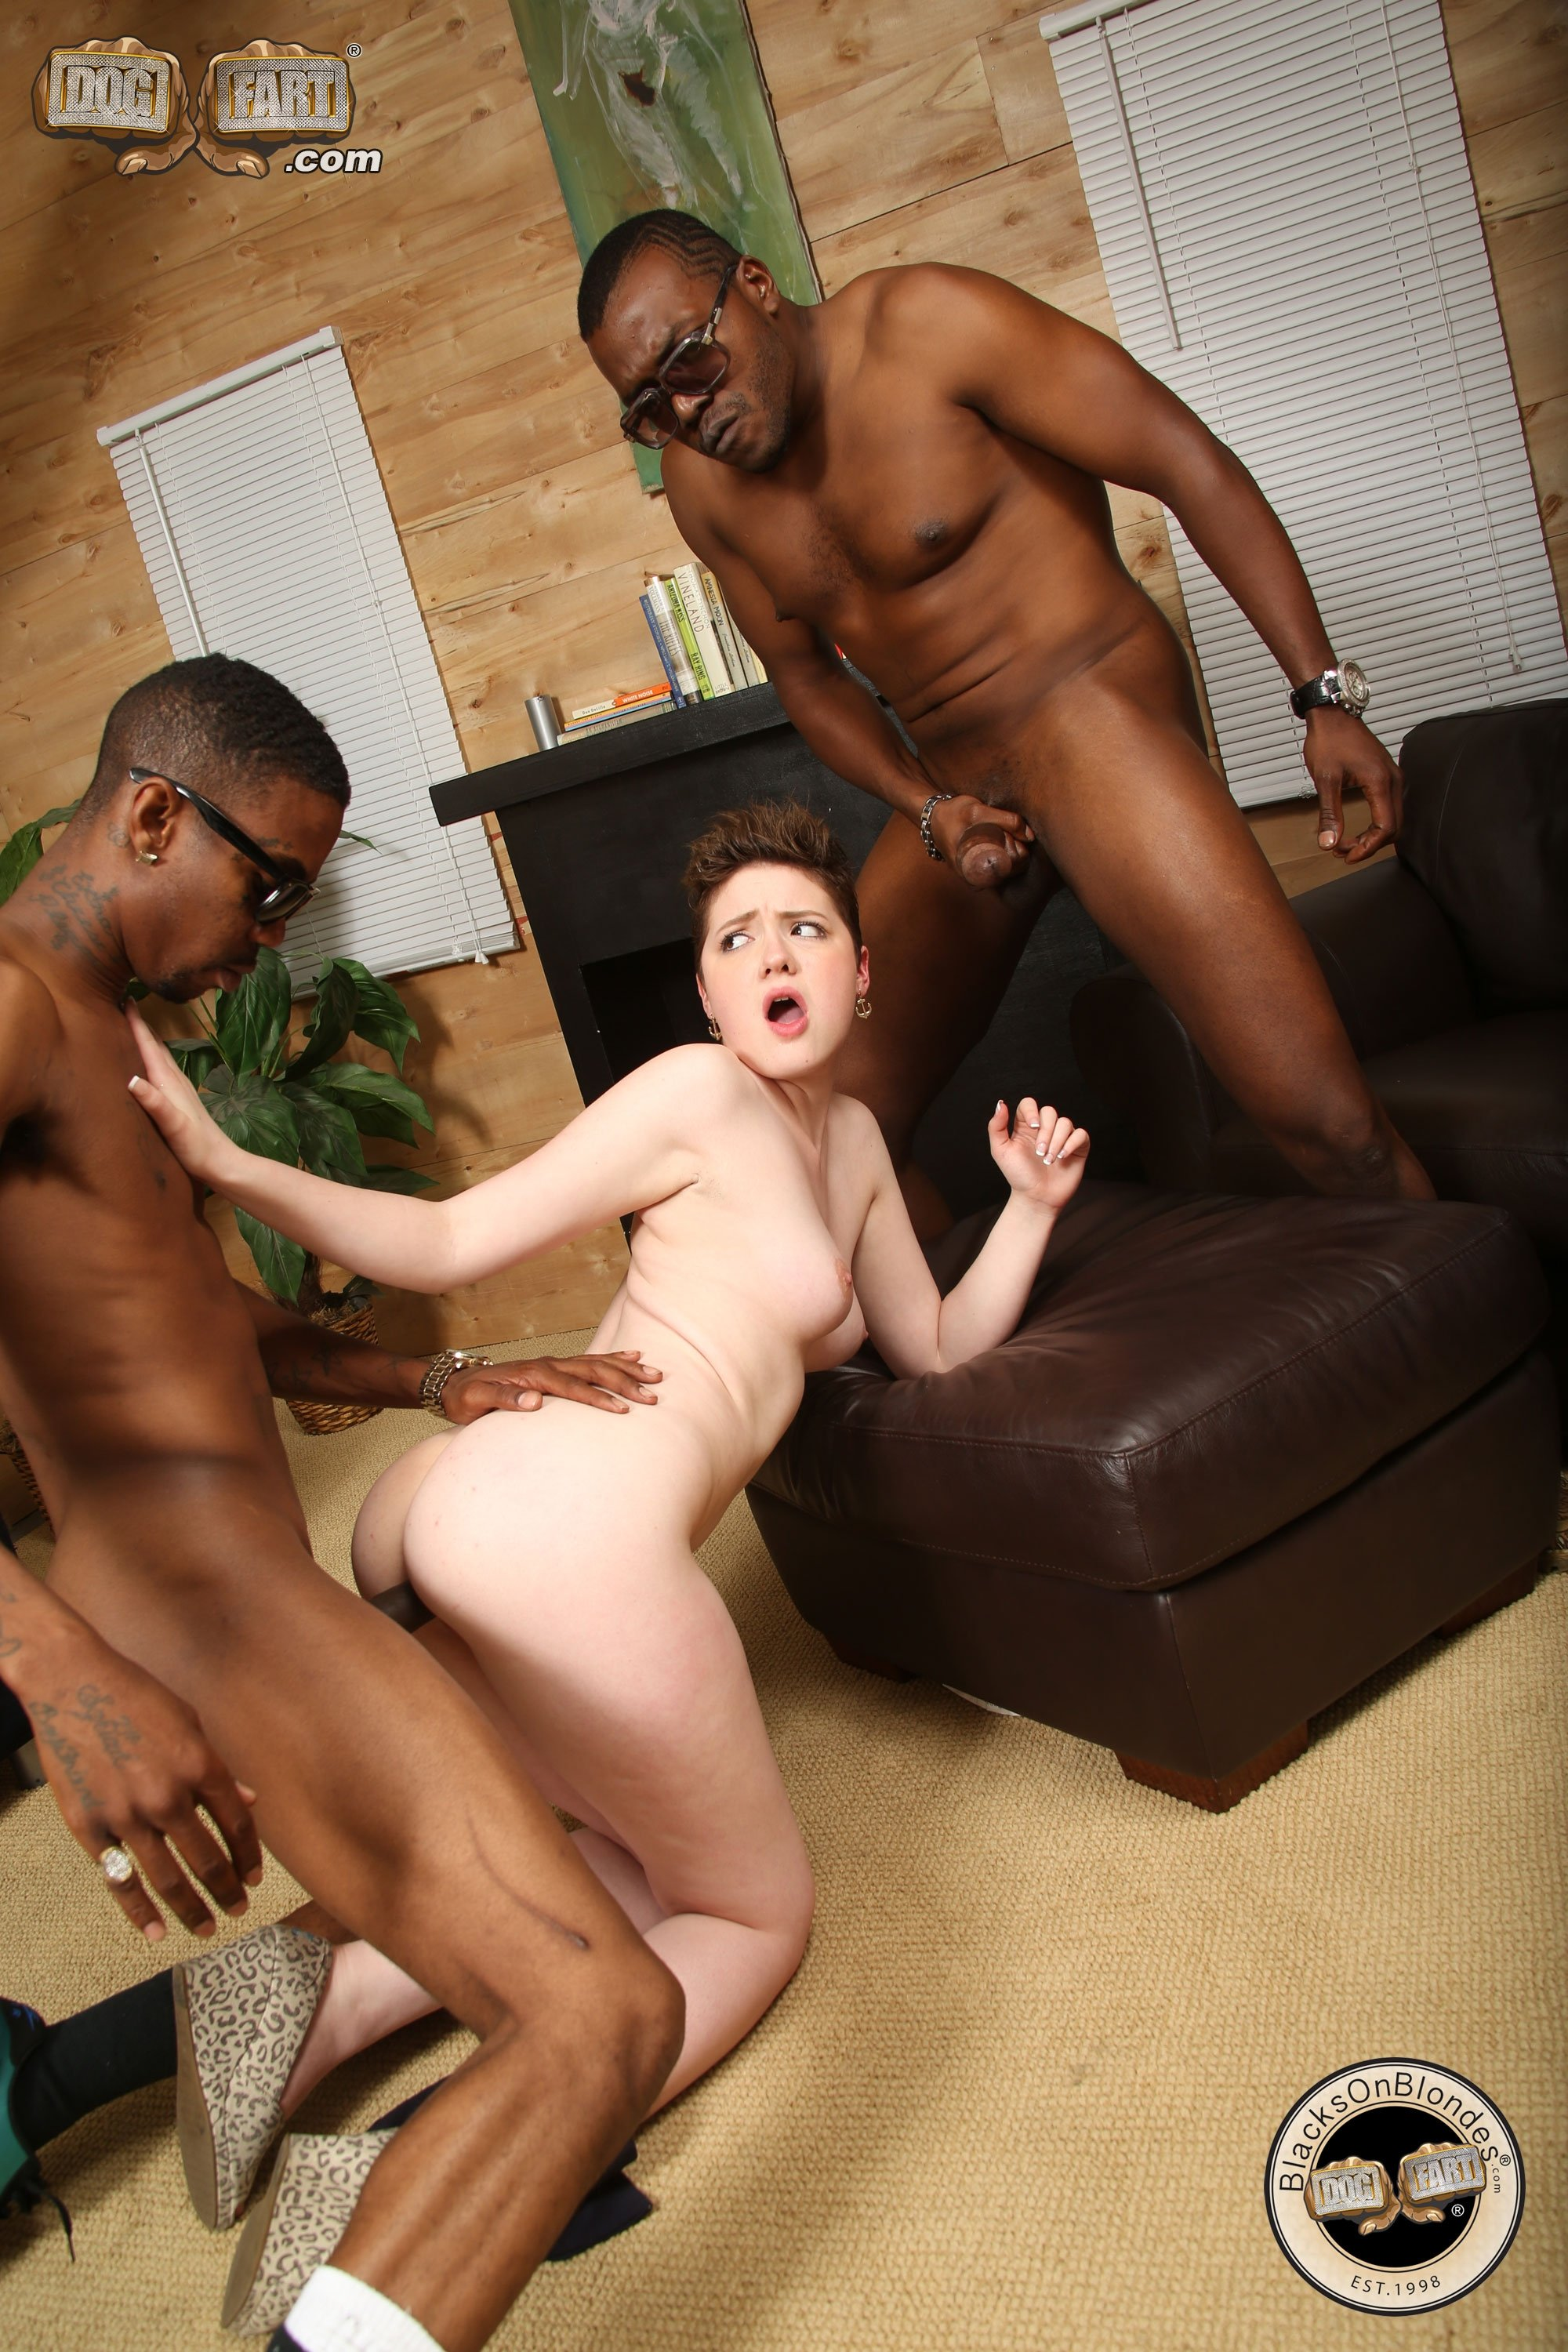 Double penetration interracial tube #1